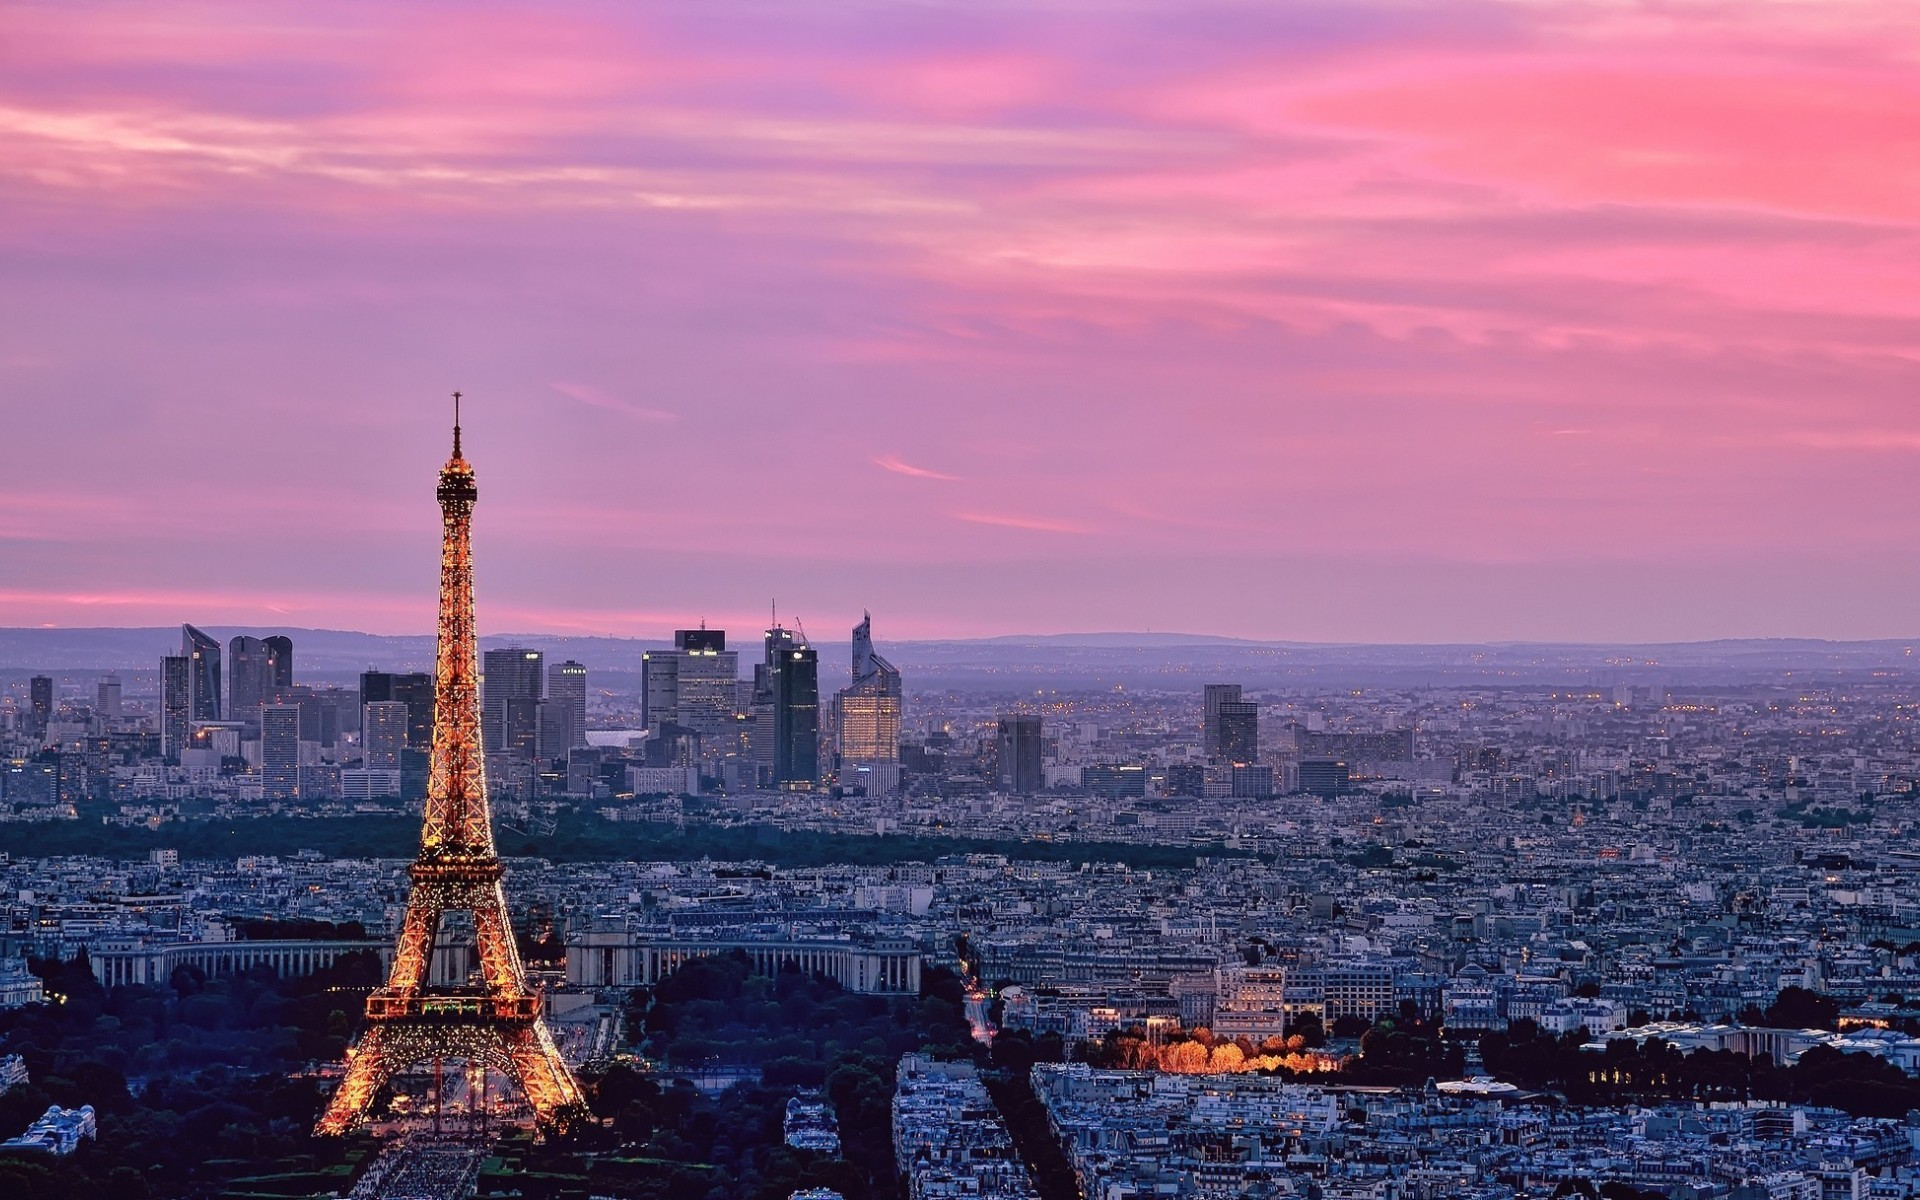 Eiffel Tower Paris Pink Sky Wallpapers